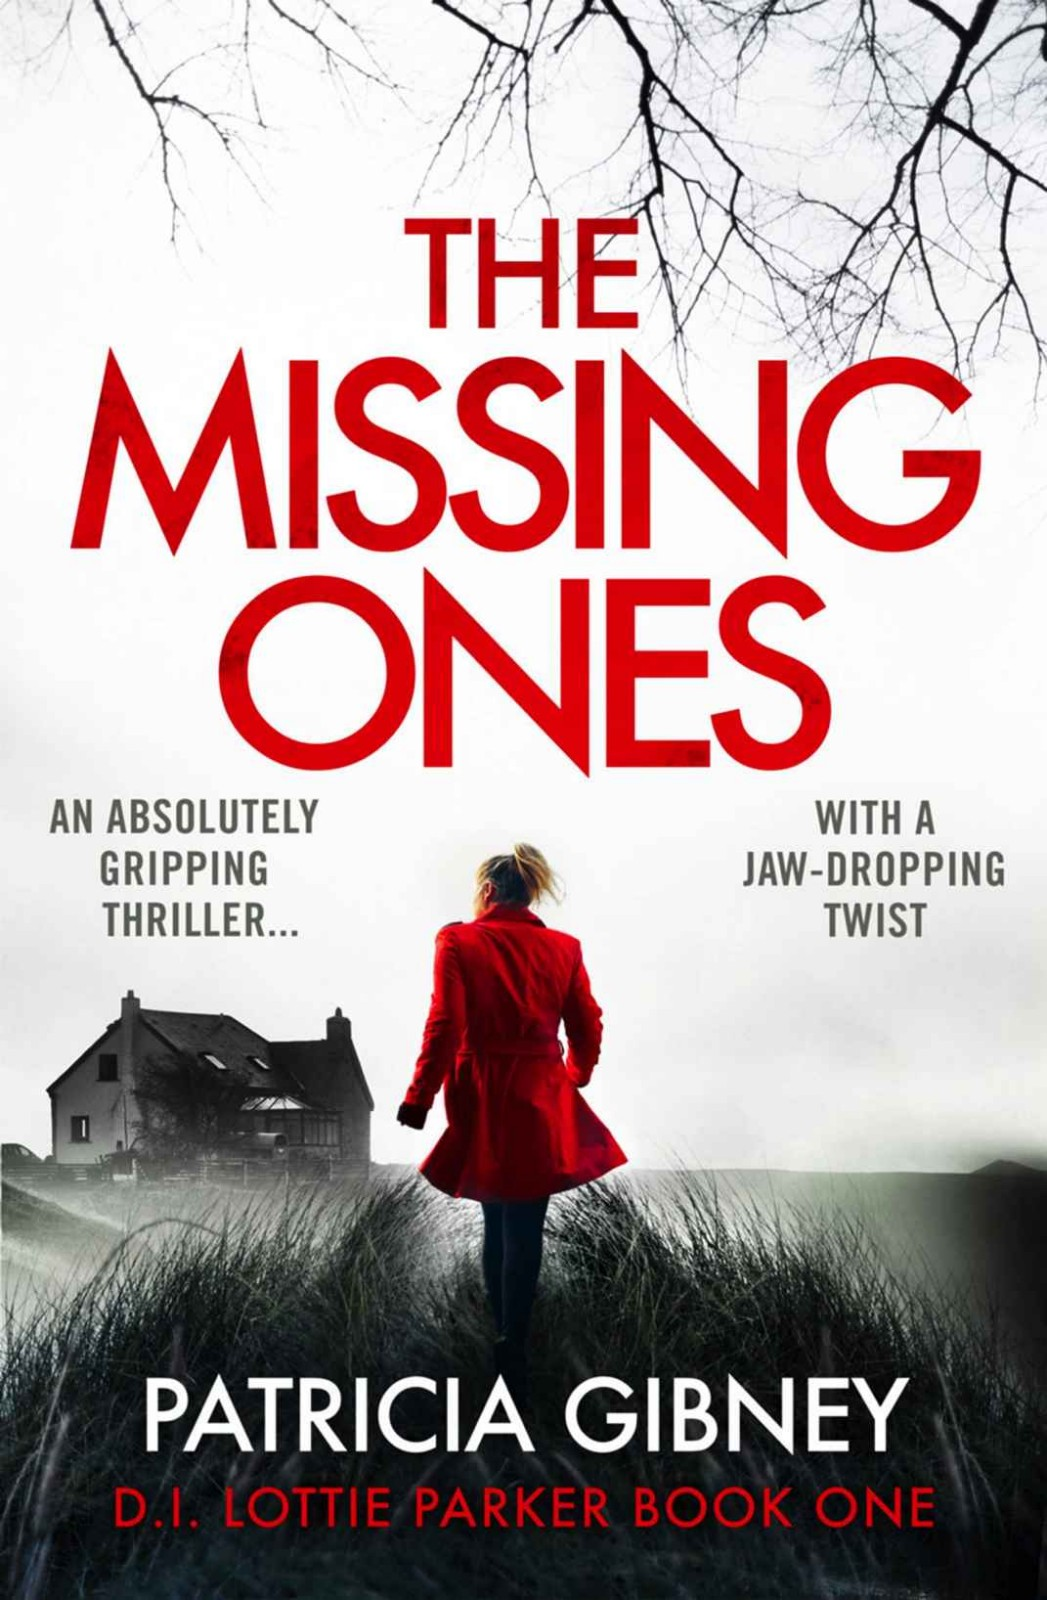 The Missing Ones - Patricia Gibney [kindle] [mobi]